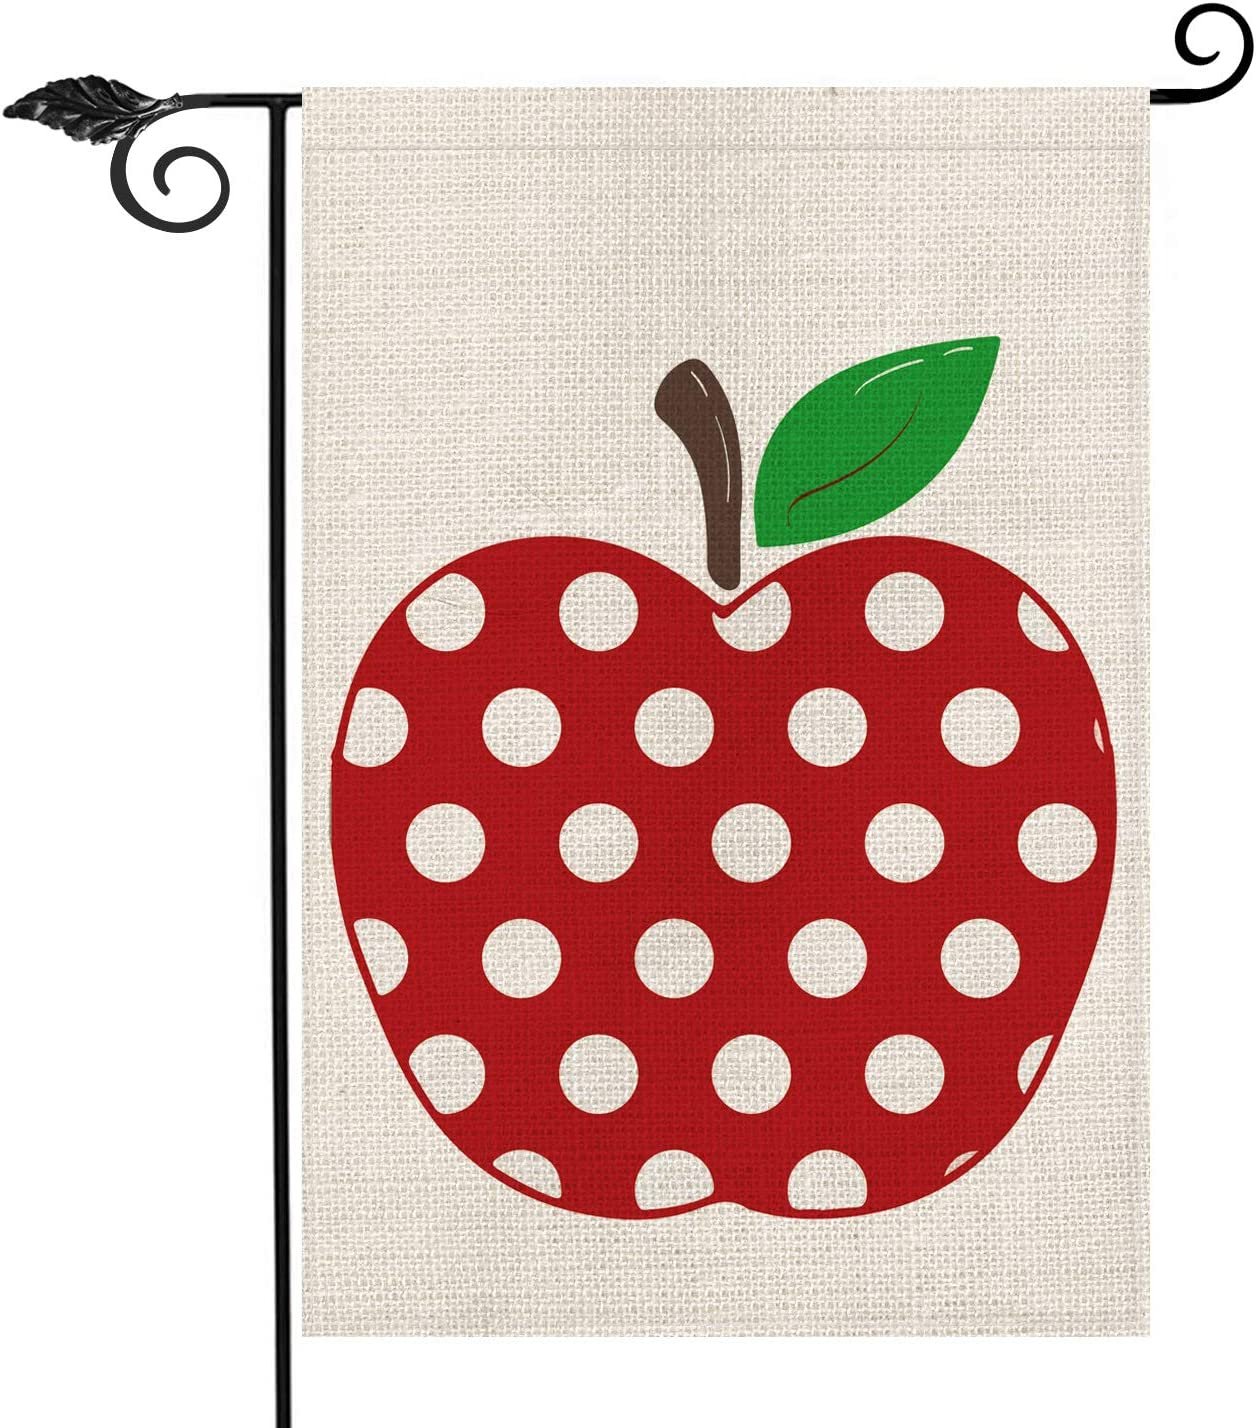 AVOIN Polka Dot Apple Garden Flag Double Sided, Back to School First Day of School Teacher Appreciation Rustic Farmhouse Burlap Yard Outdoor Decoration 12.5 x 18 Inch